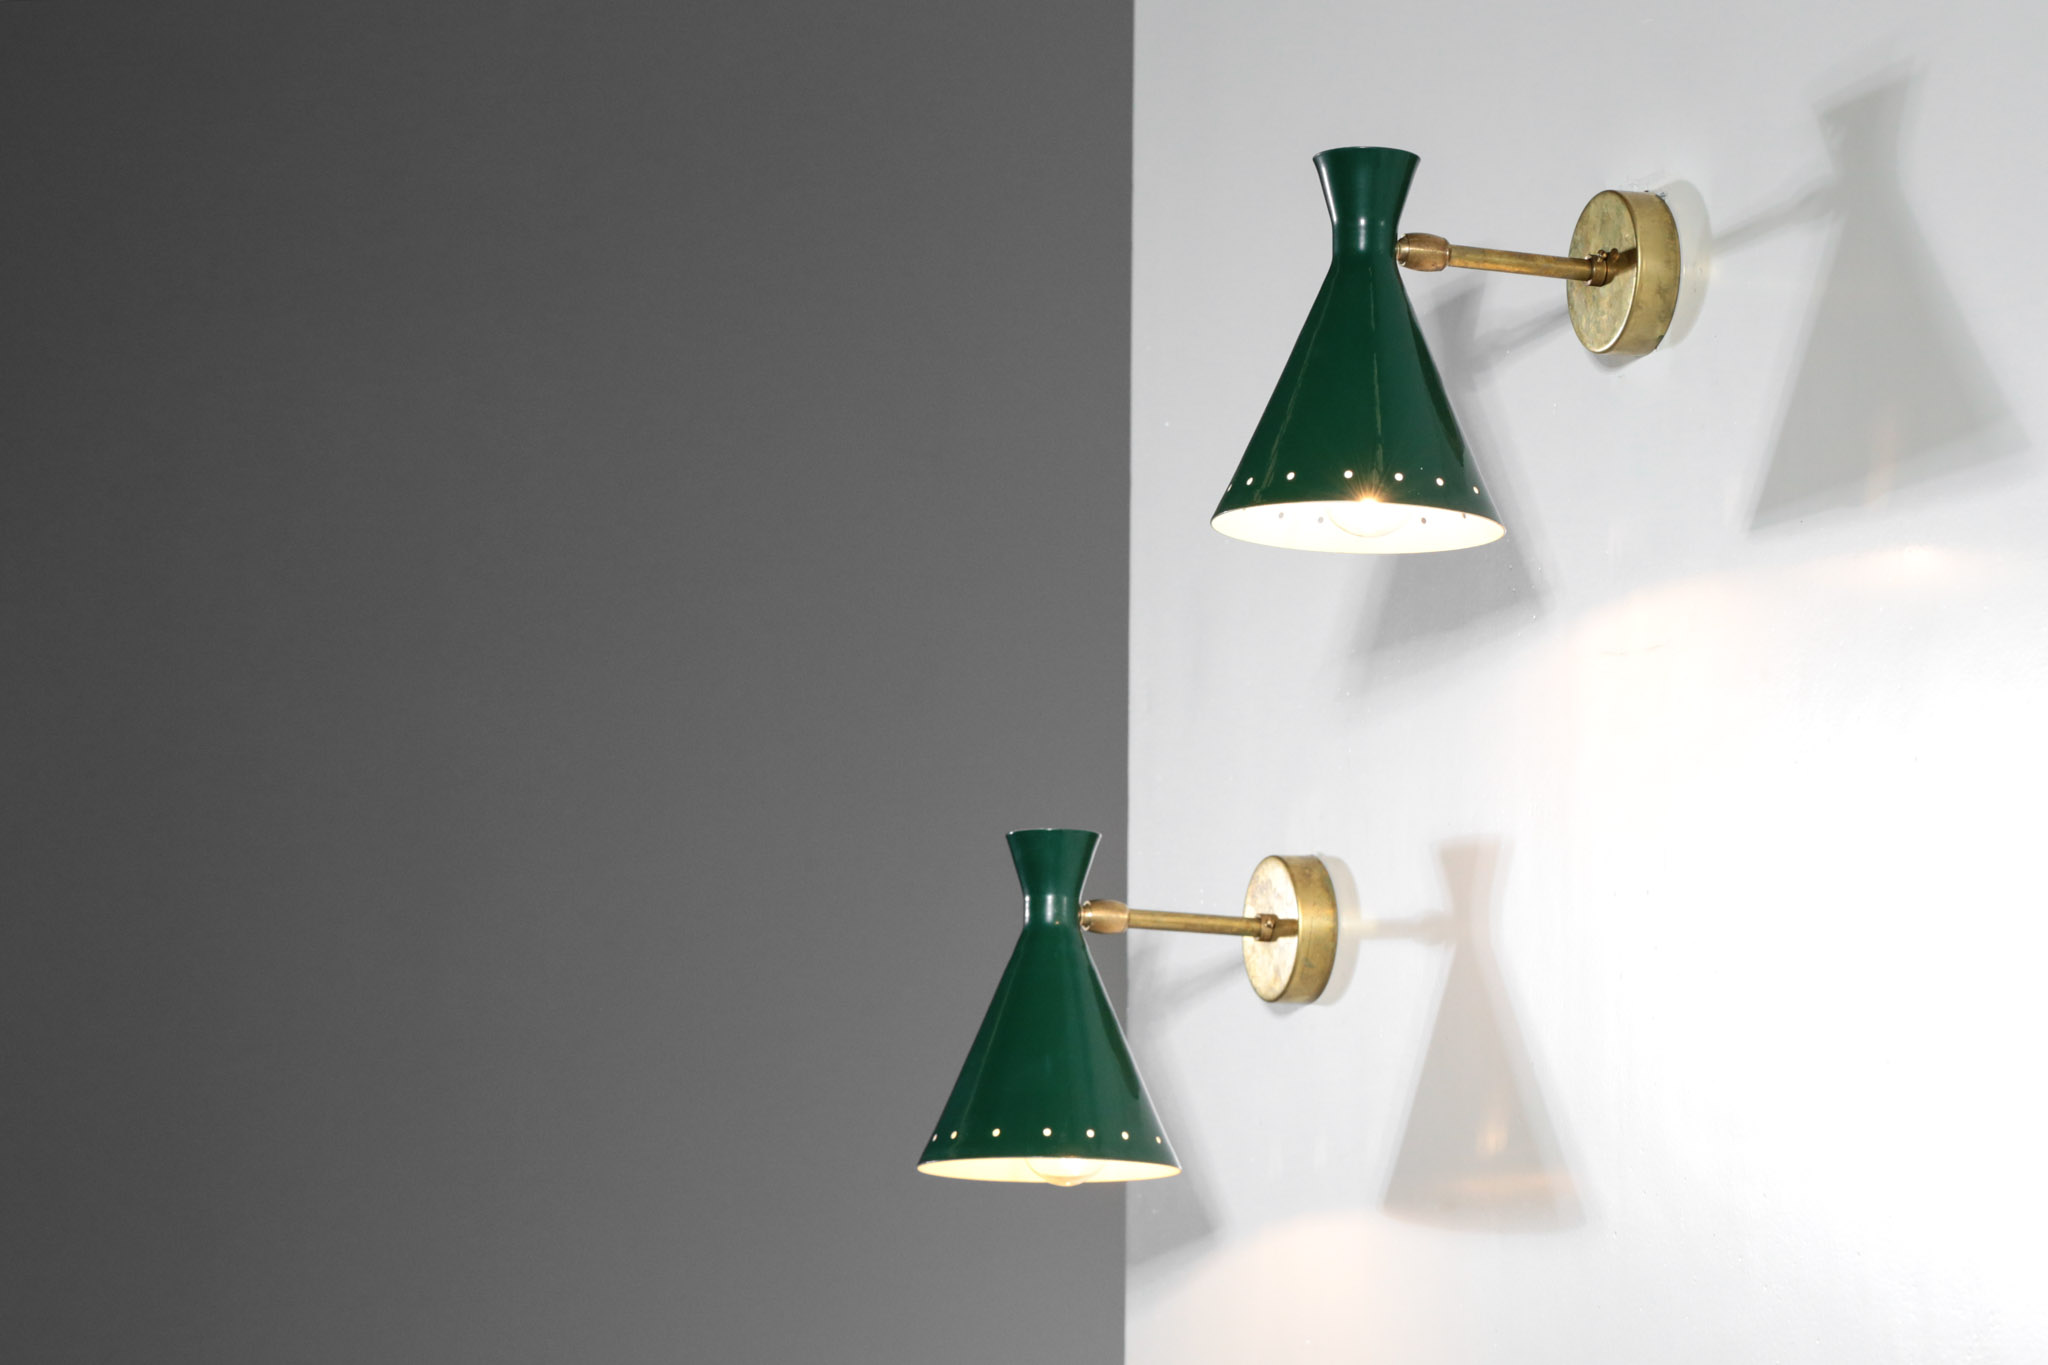 Appliques Vintage Pair Of Italian Wall Lamps Cocotte Green Danke Galerie